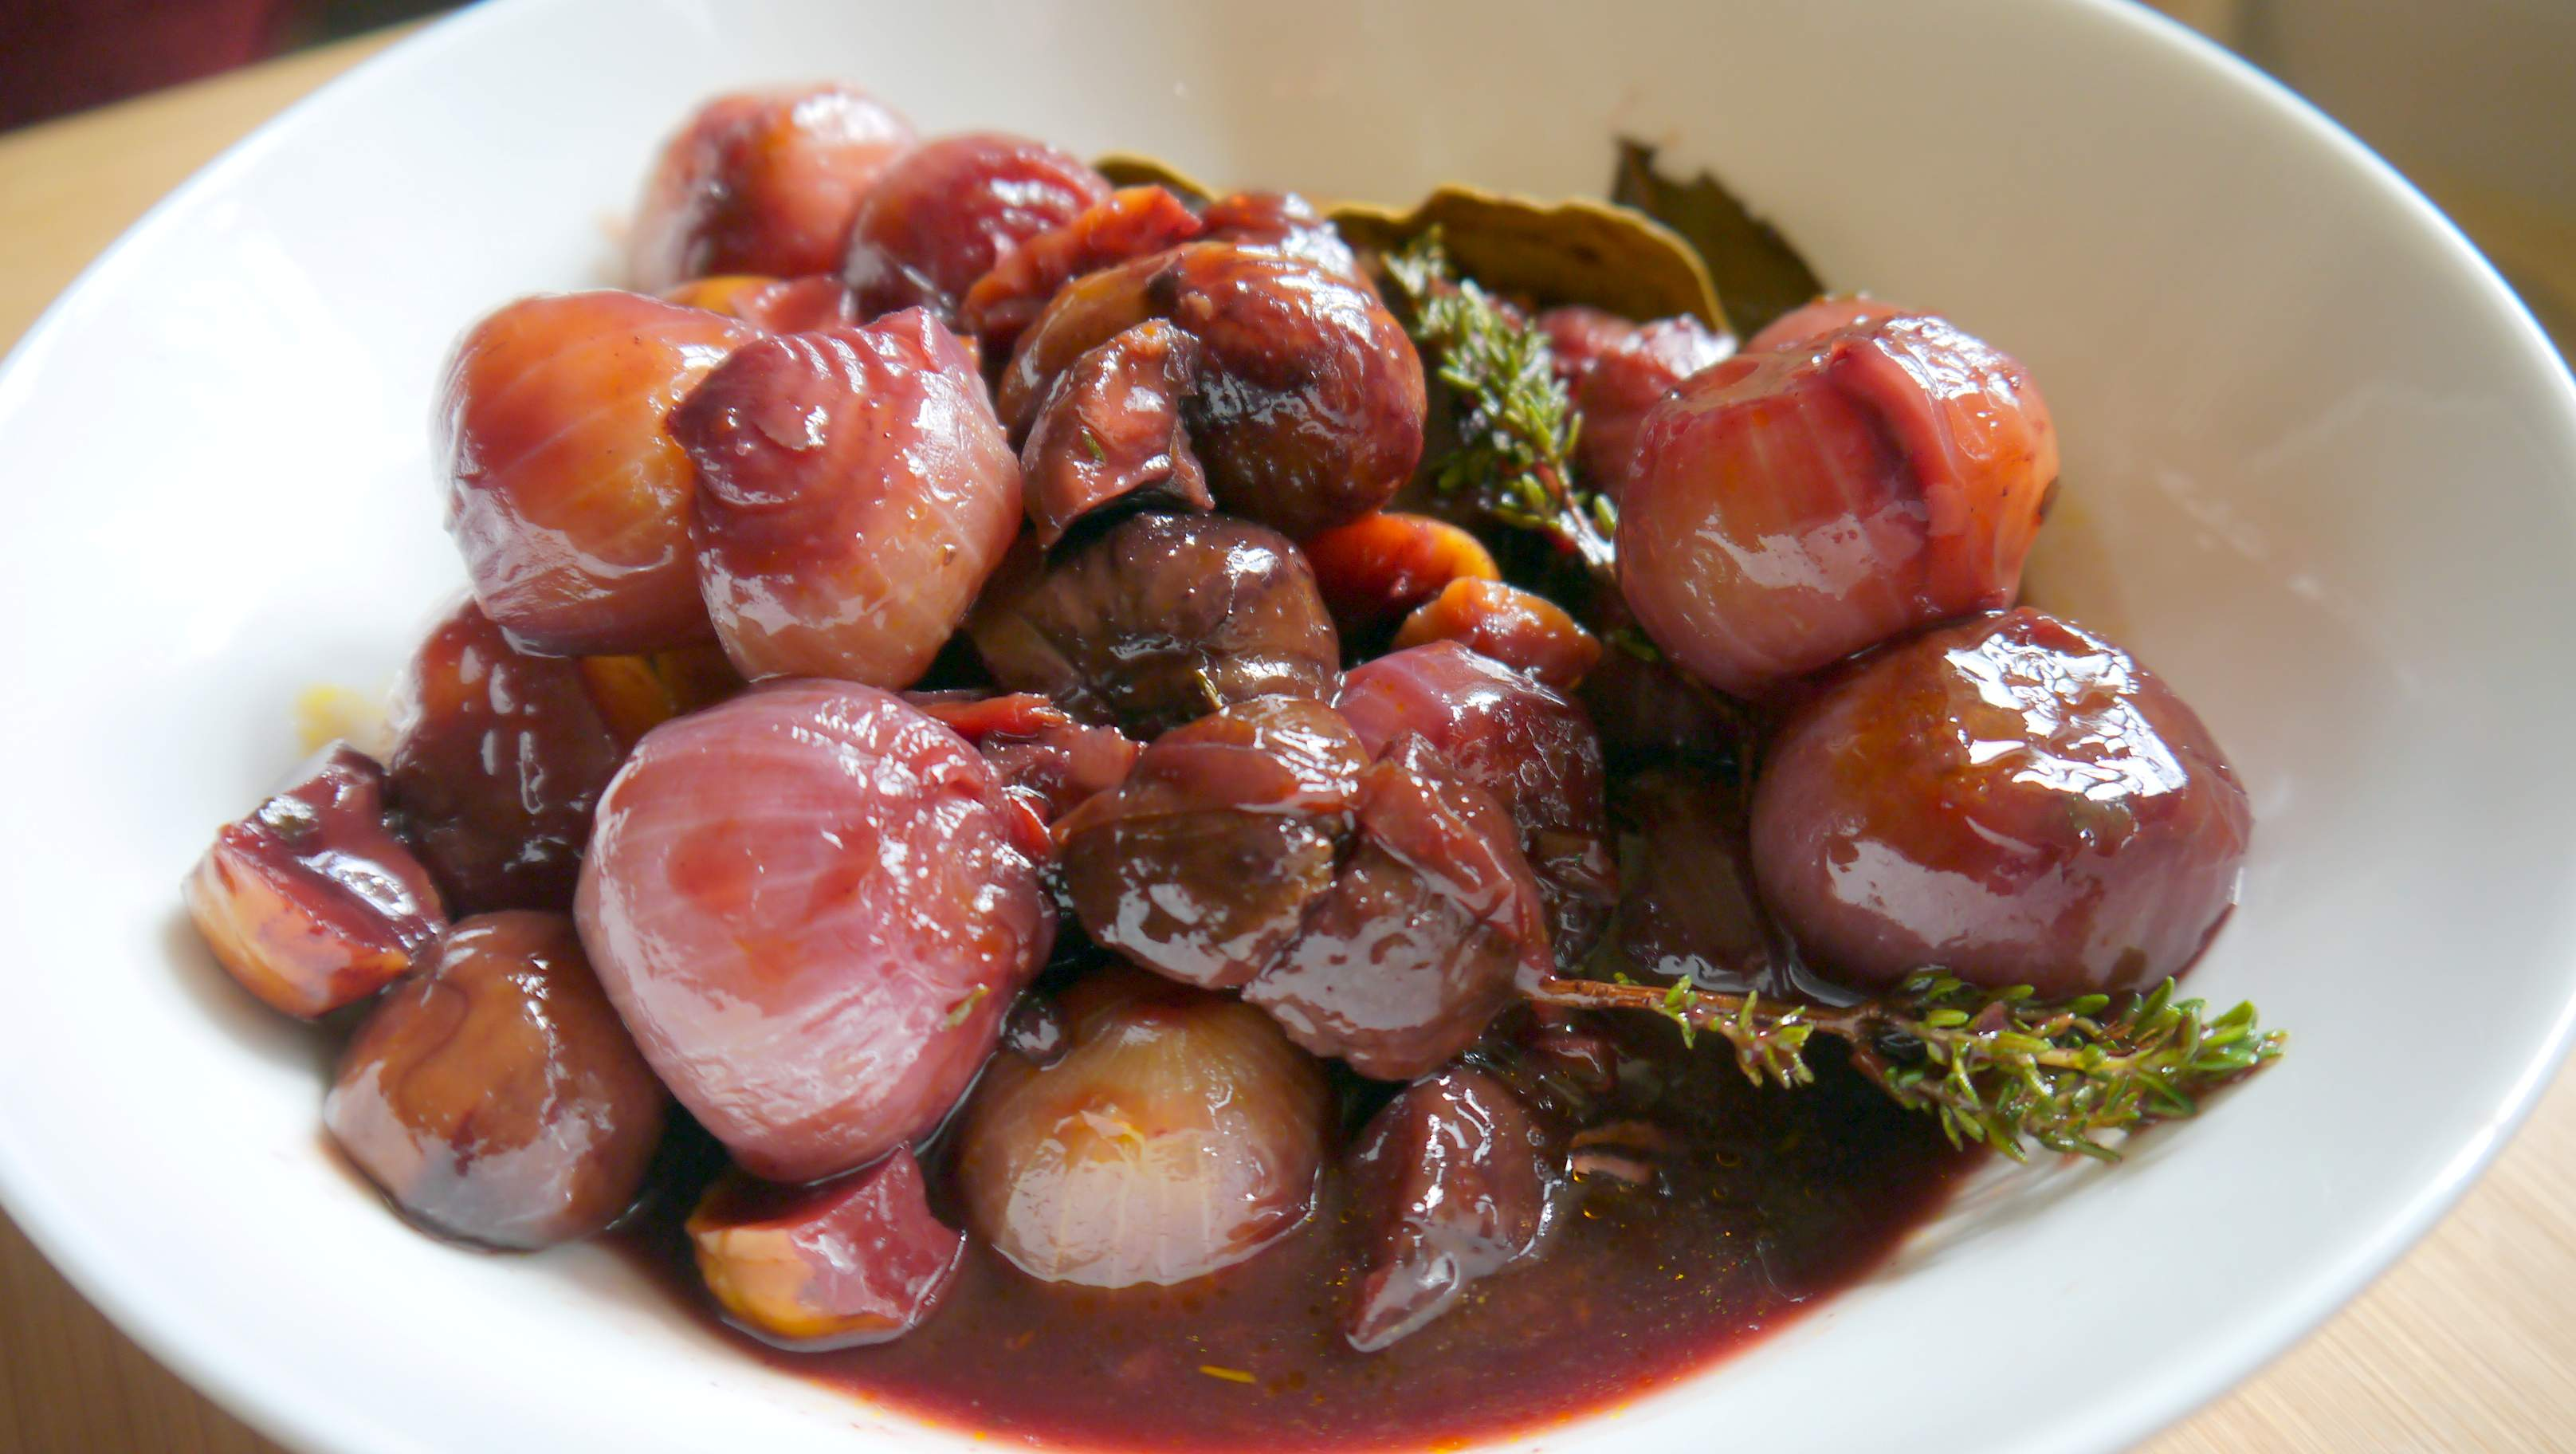 Chestnuts and Shallots braised in Red Wine